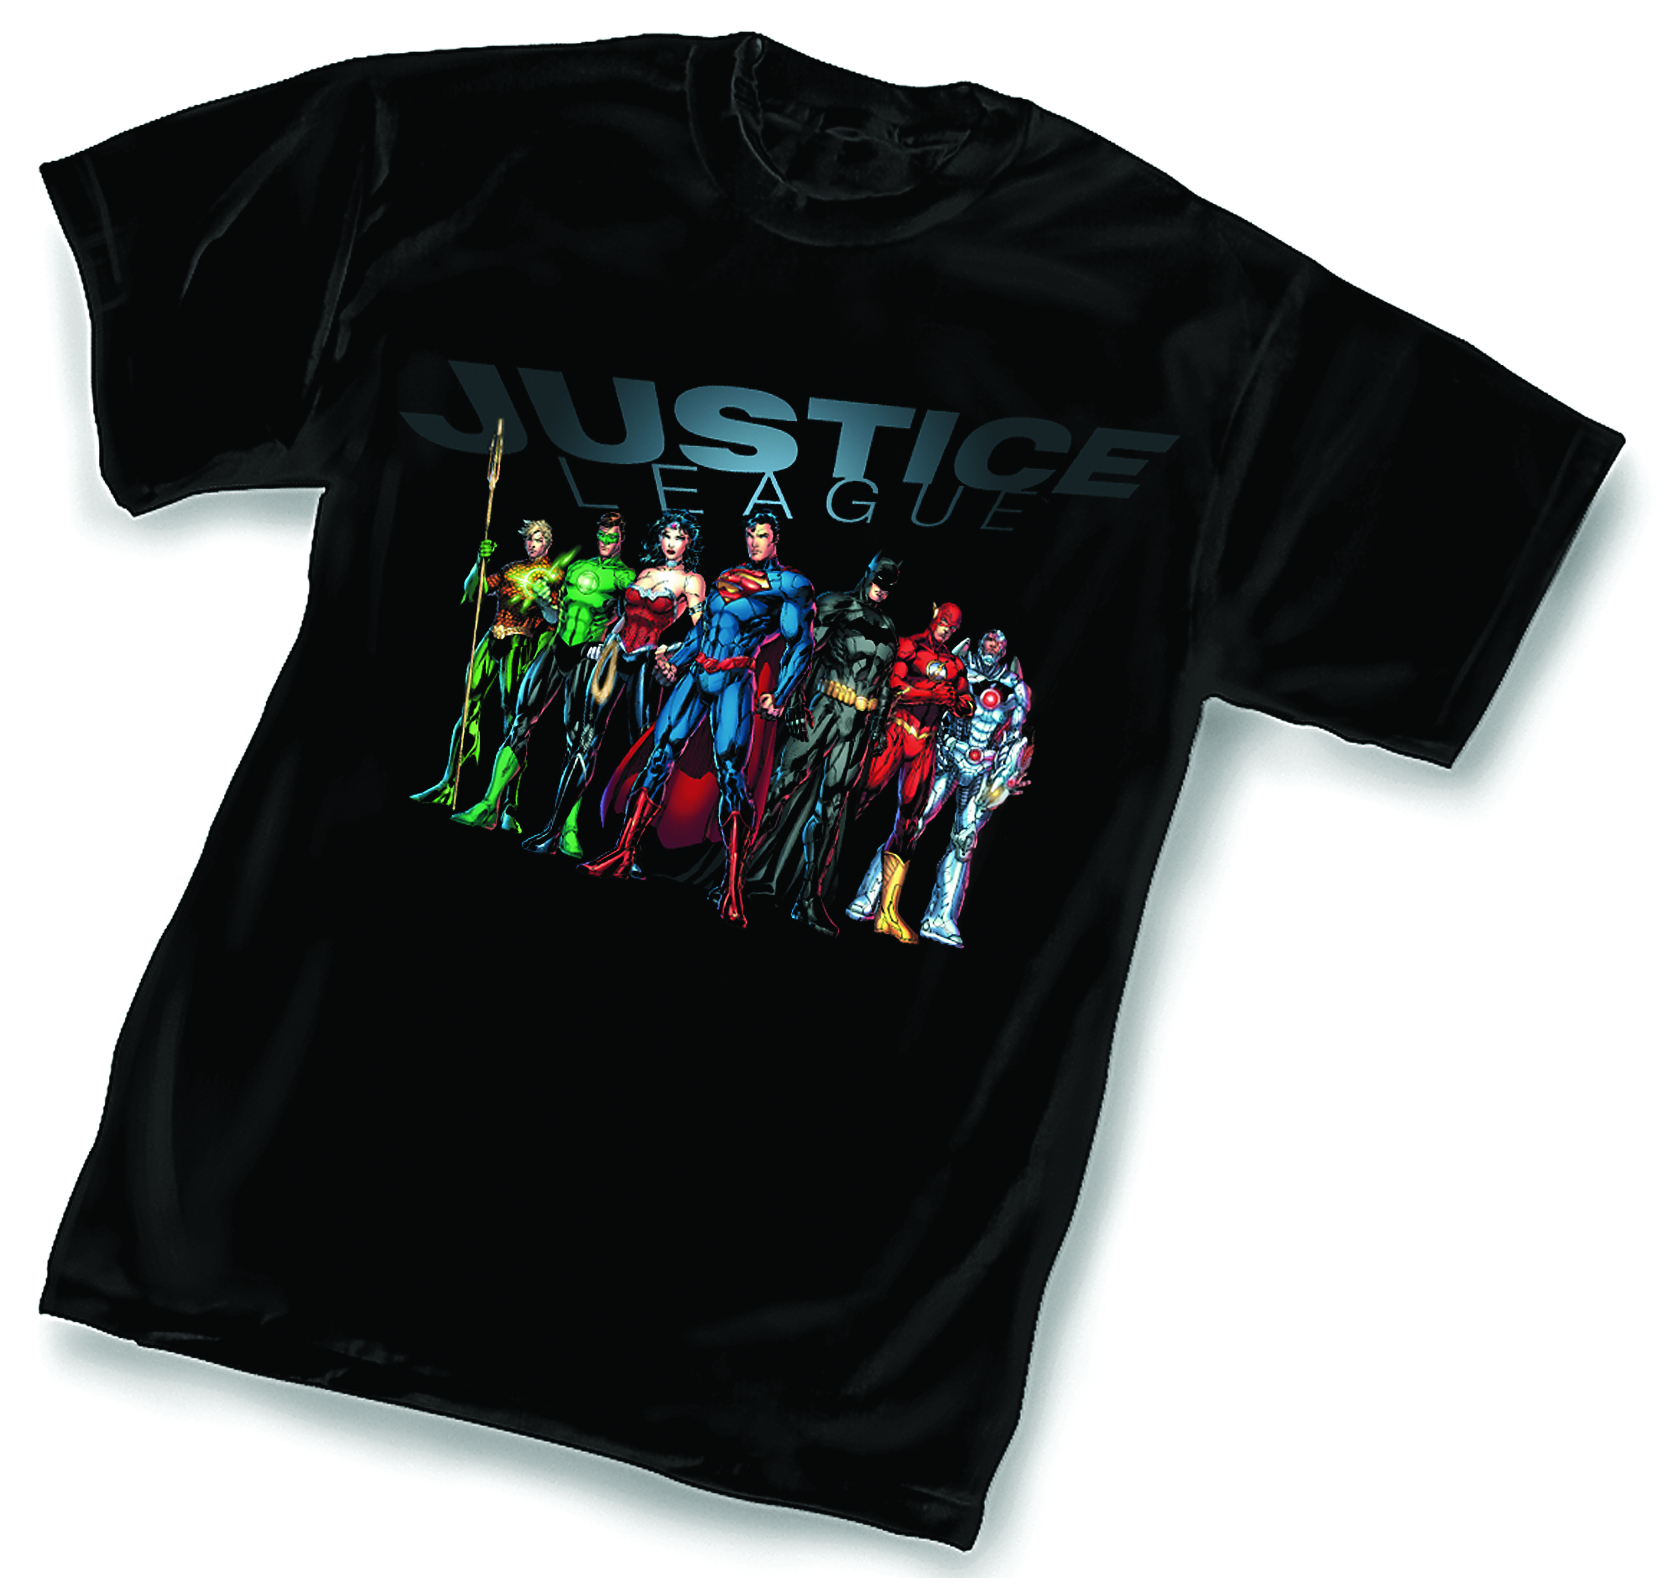 JUSTICE LEAGUE BY LEE T/S XL